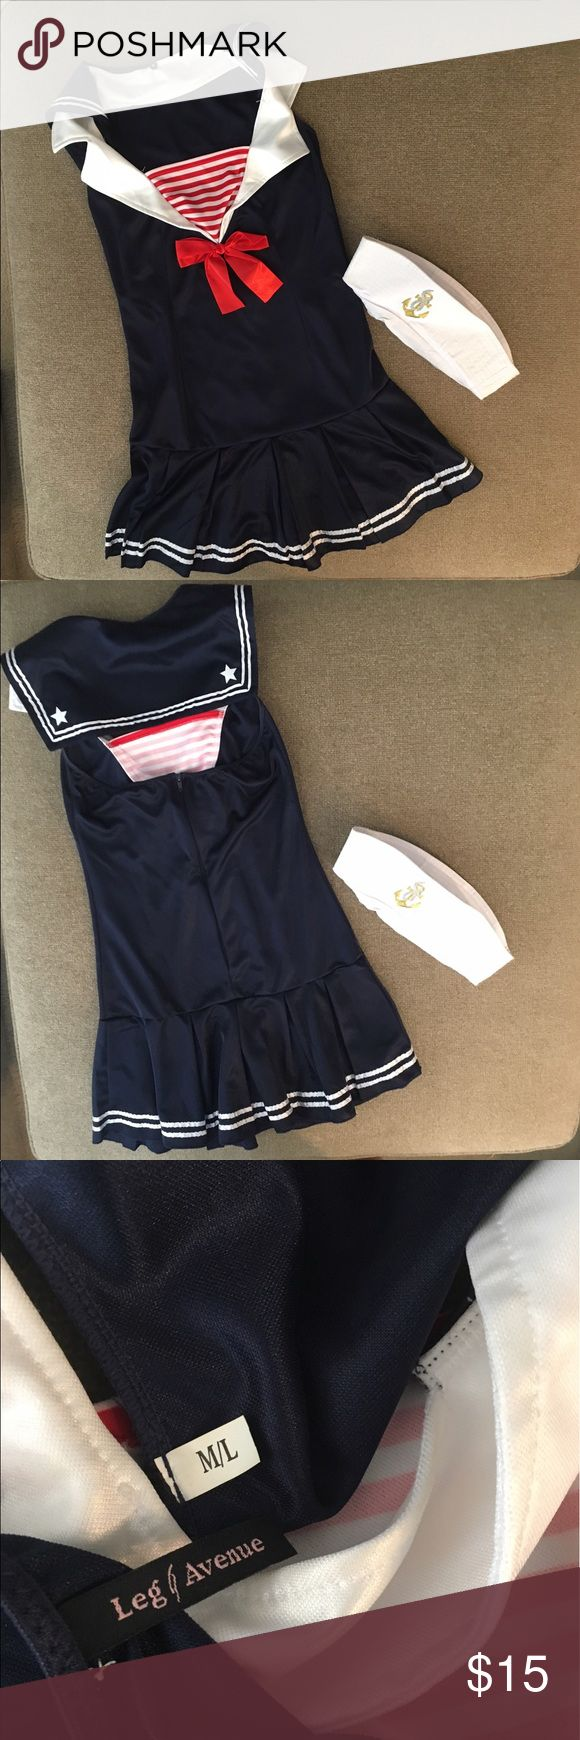 Leg Ave ur Sailor Halloween Costume M/L Halter style dress with hat. Worn once. Great length. Size M/L Leg Avenue Other